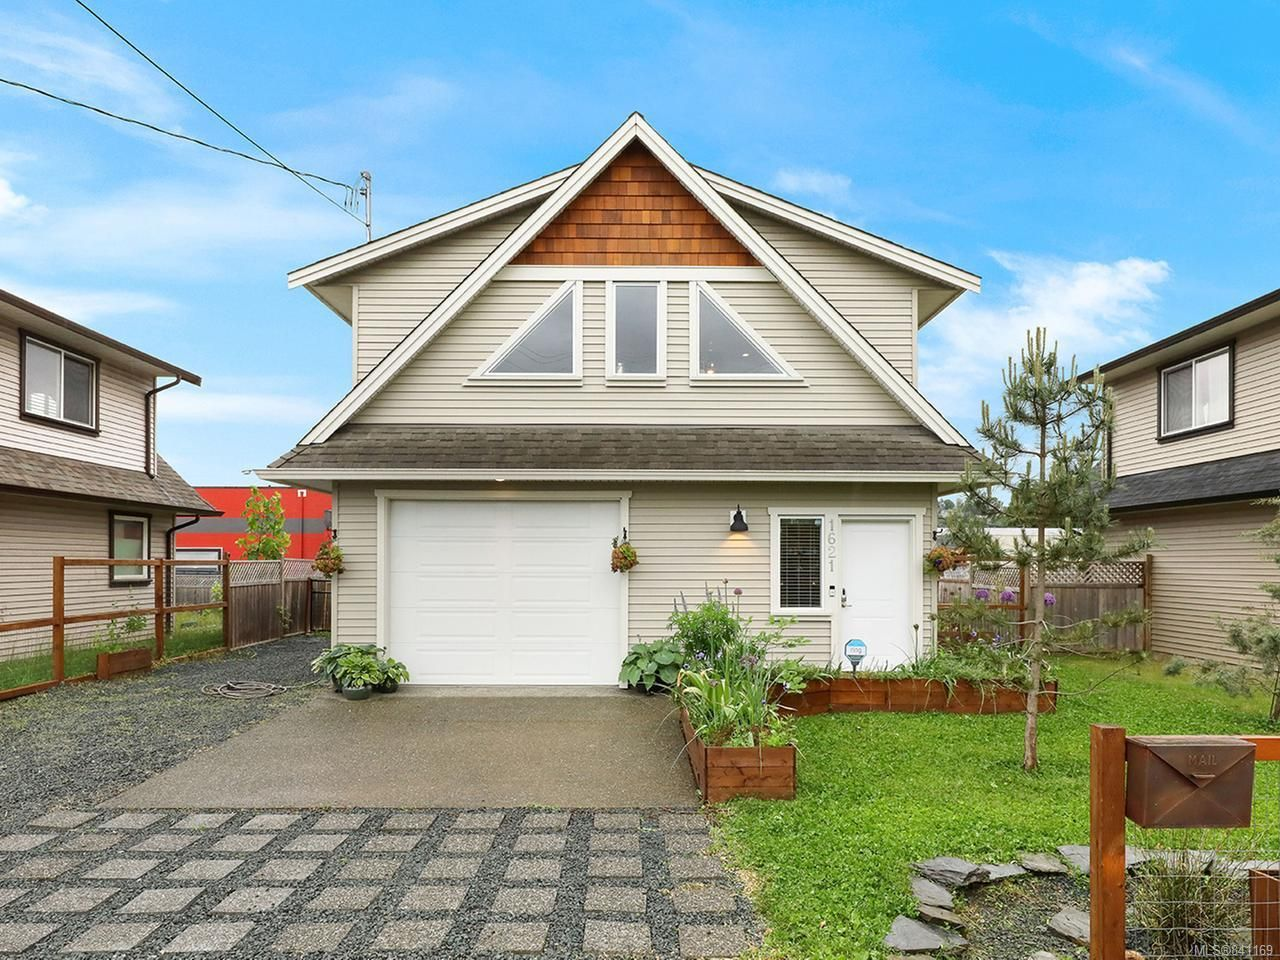 Main Photo: 1621 19th Ave in CAMPBELL RIVER: CR Campbellton House for sale (Campbell River)  : MLS®# 841169